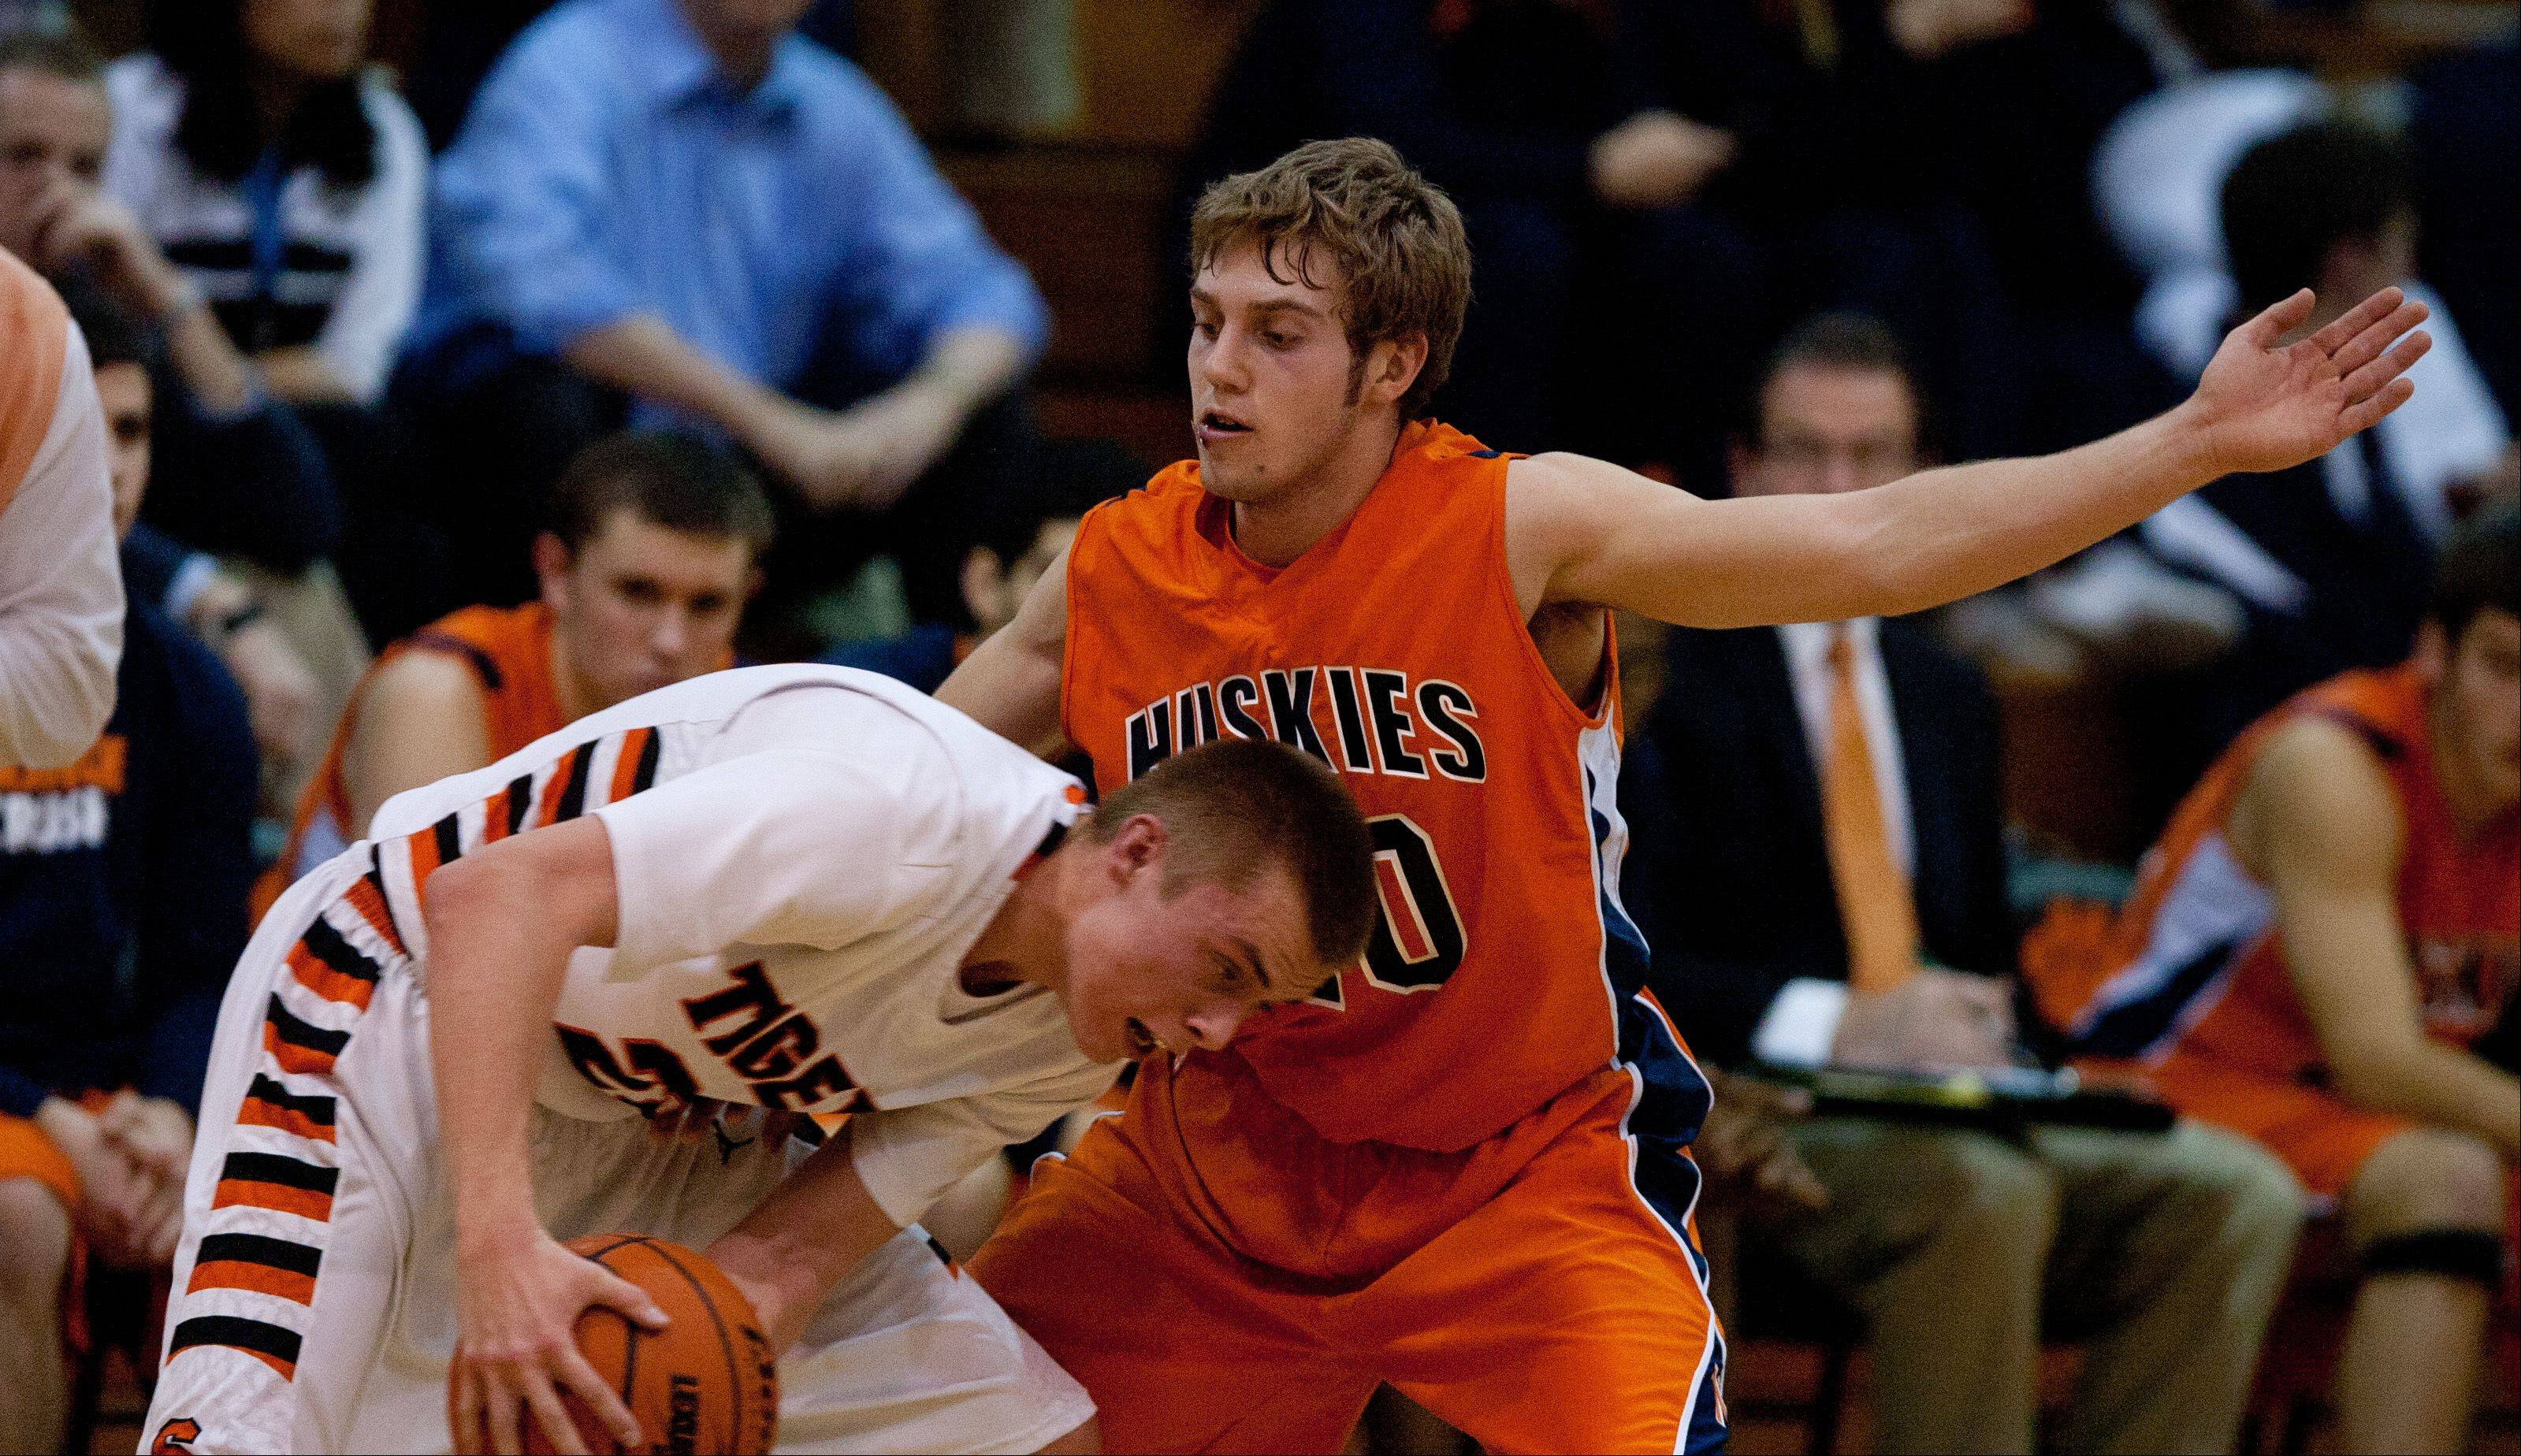 Wheaton Warrenville South's Michael Kramer, left, lowers his head against a Naperville North defender.